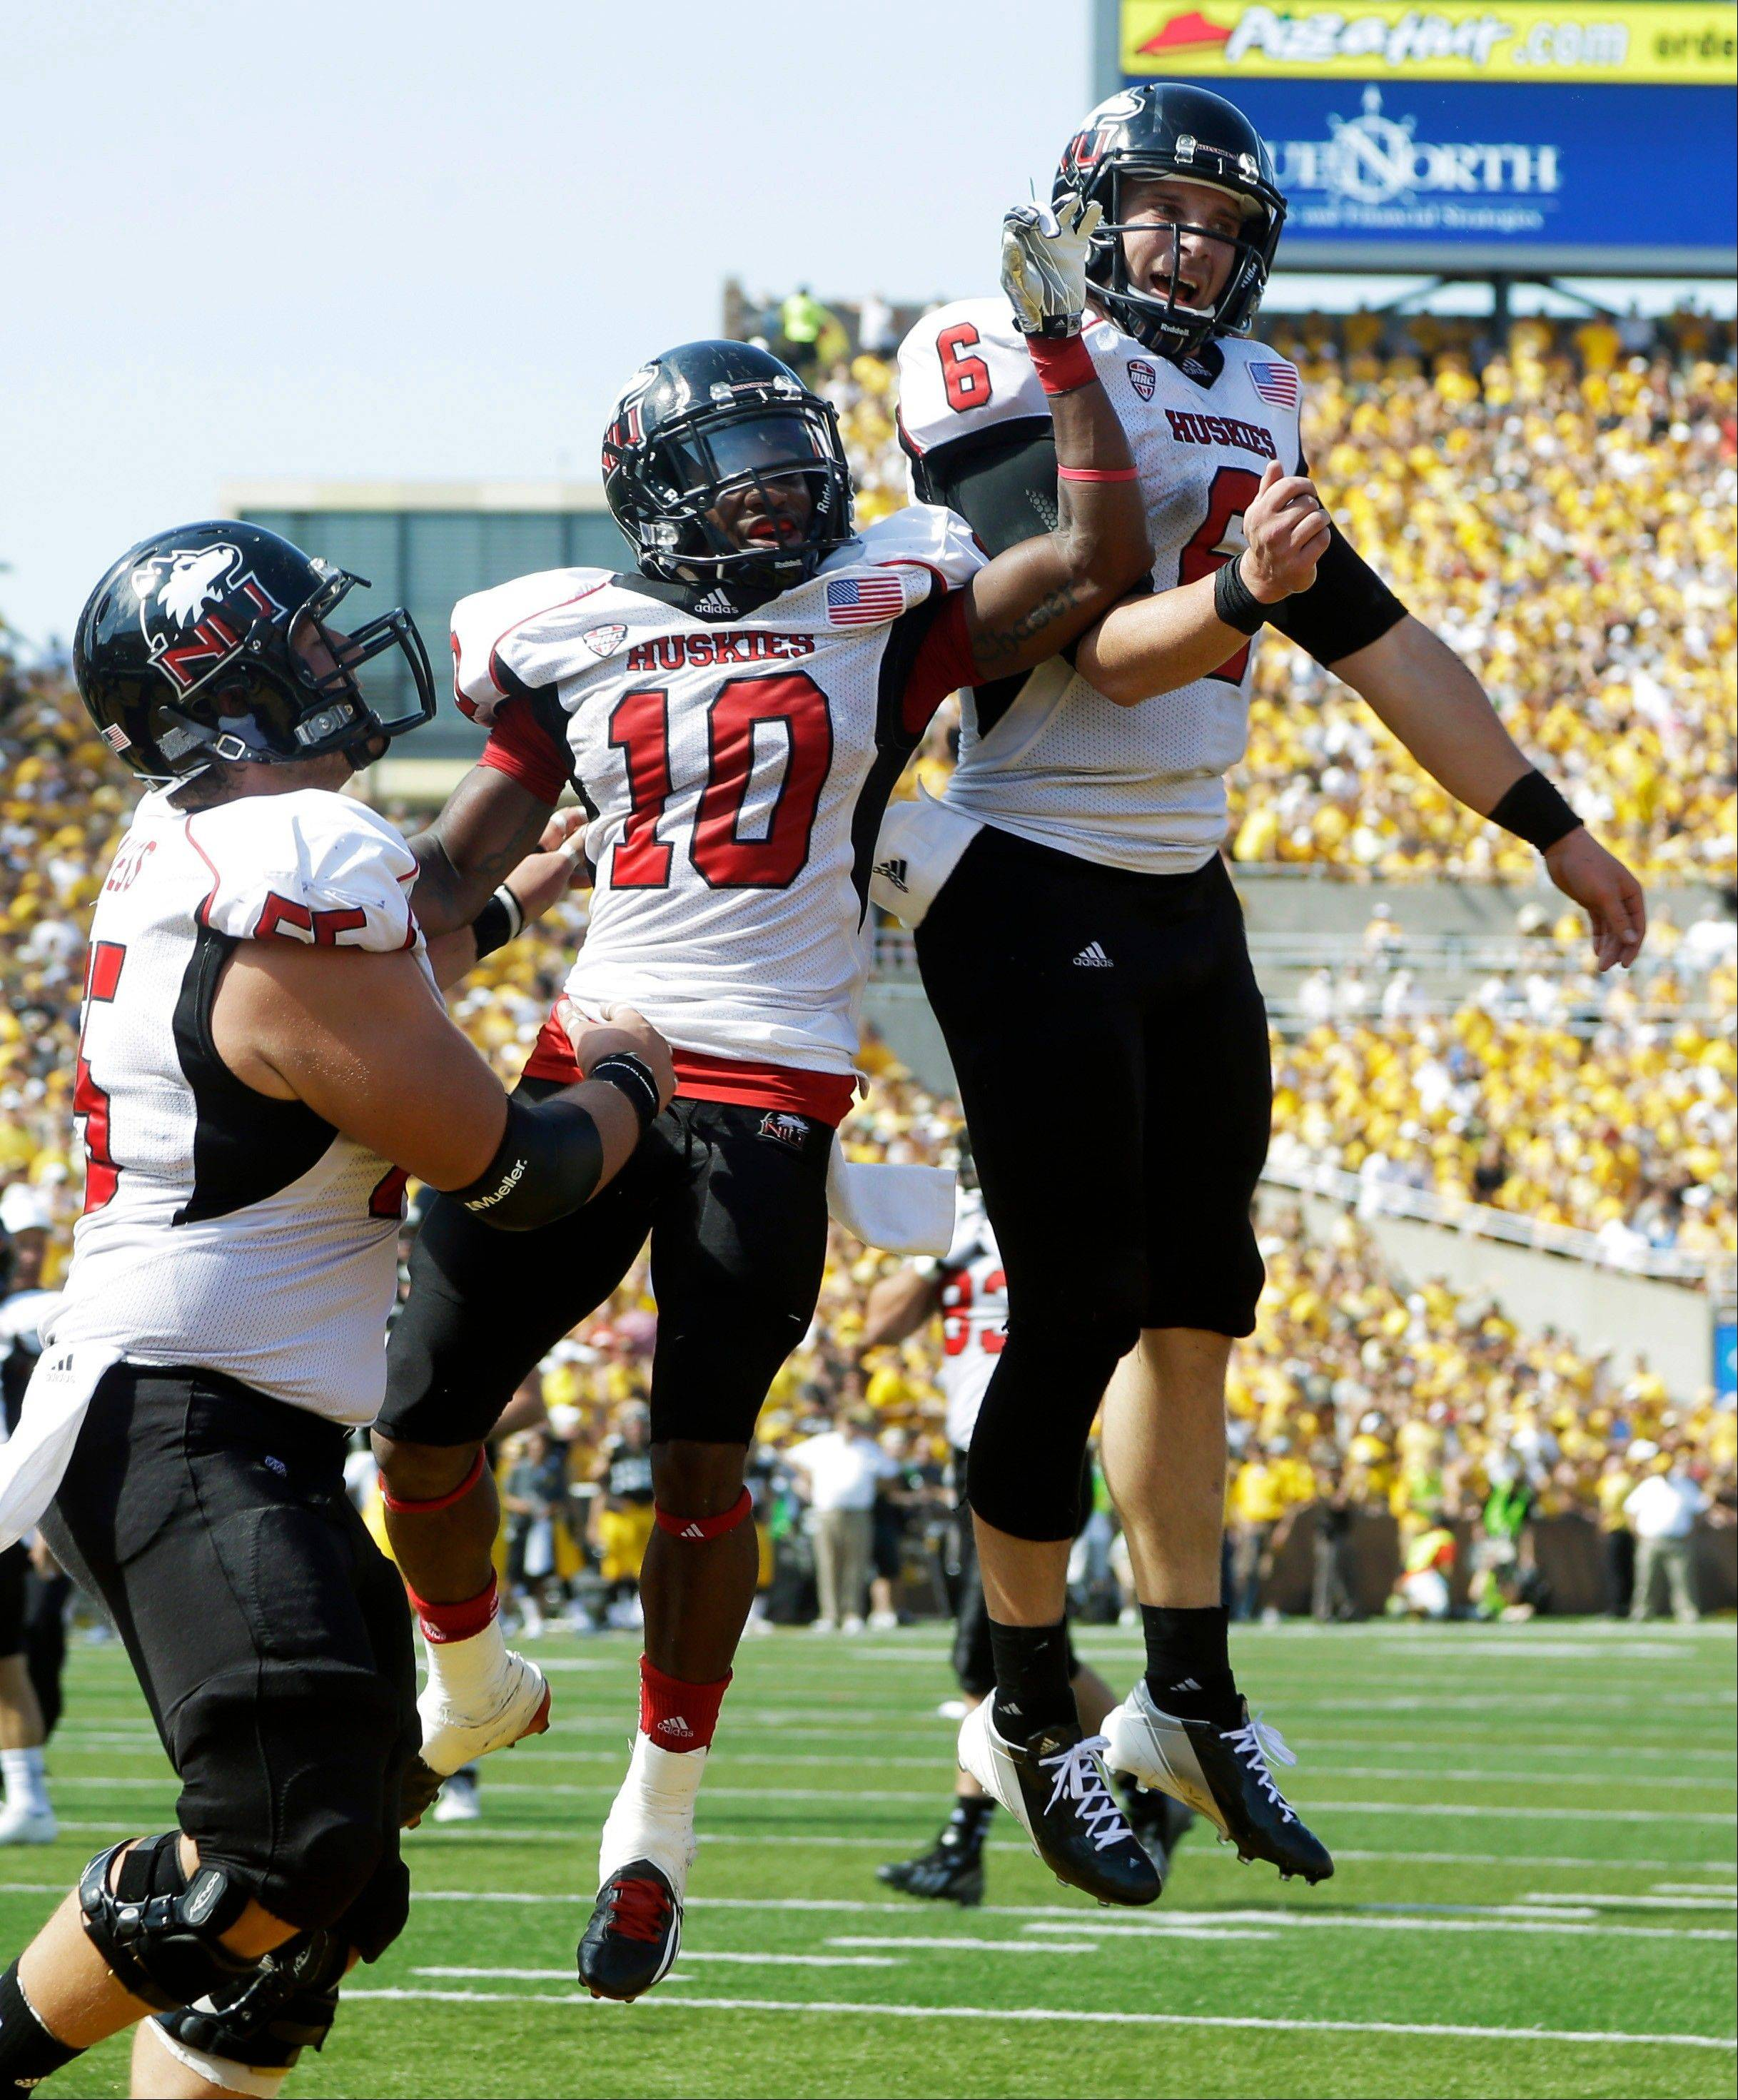 NIU pays back Iowa with comeback